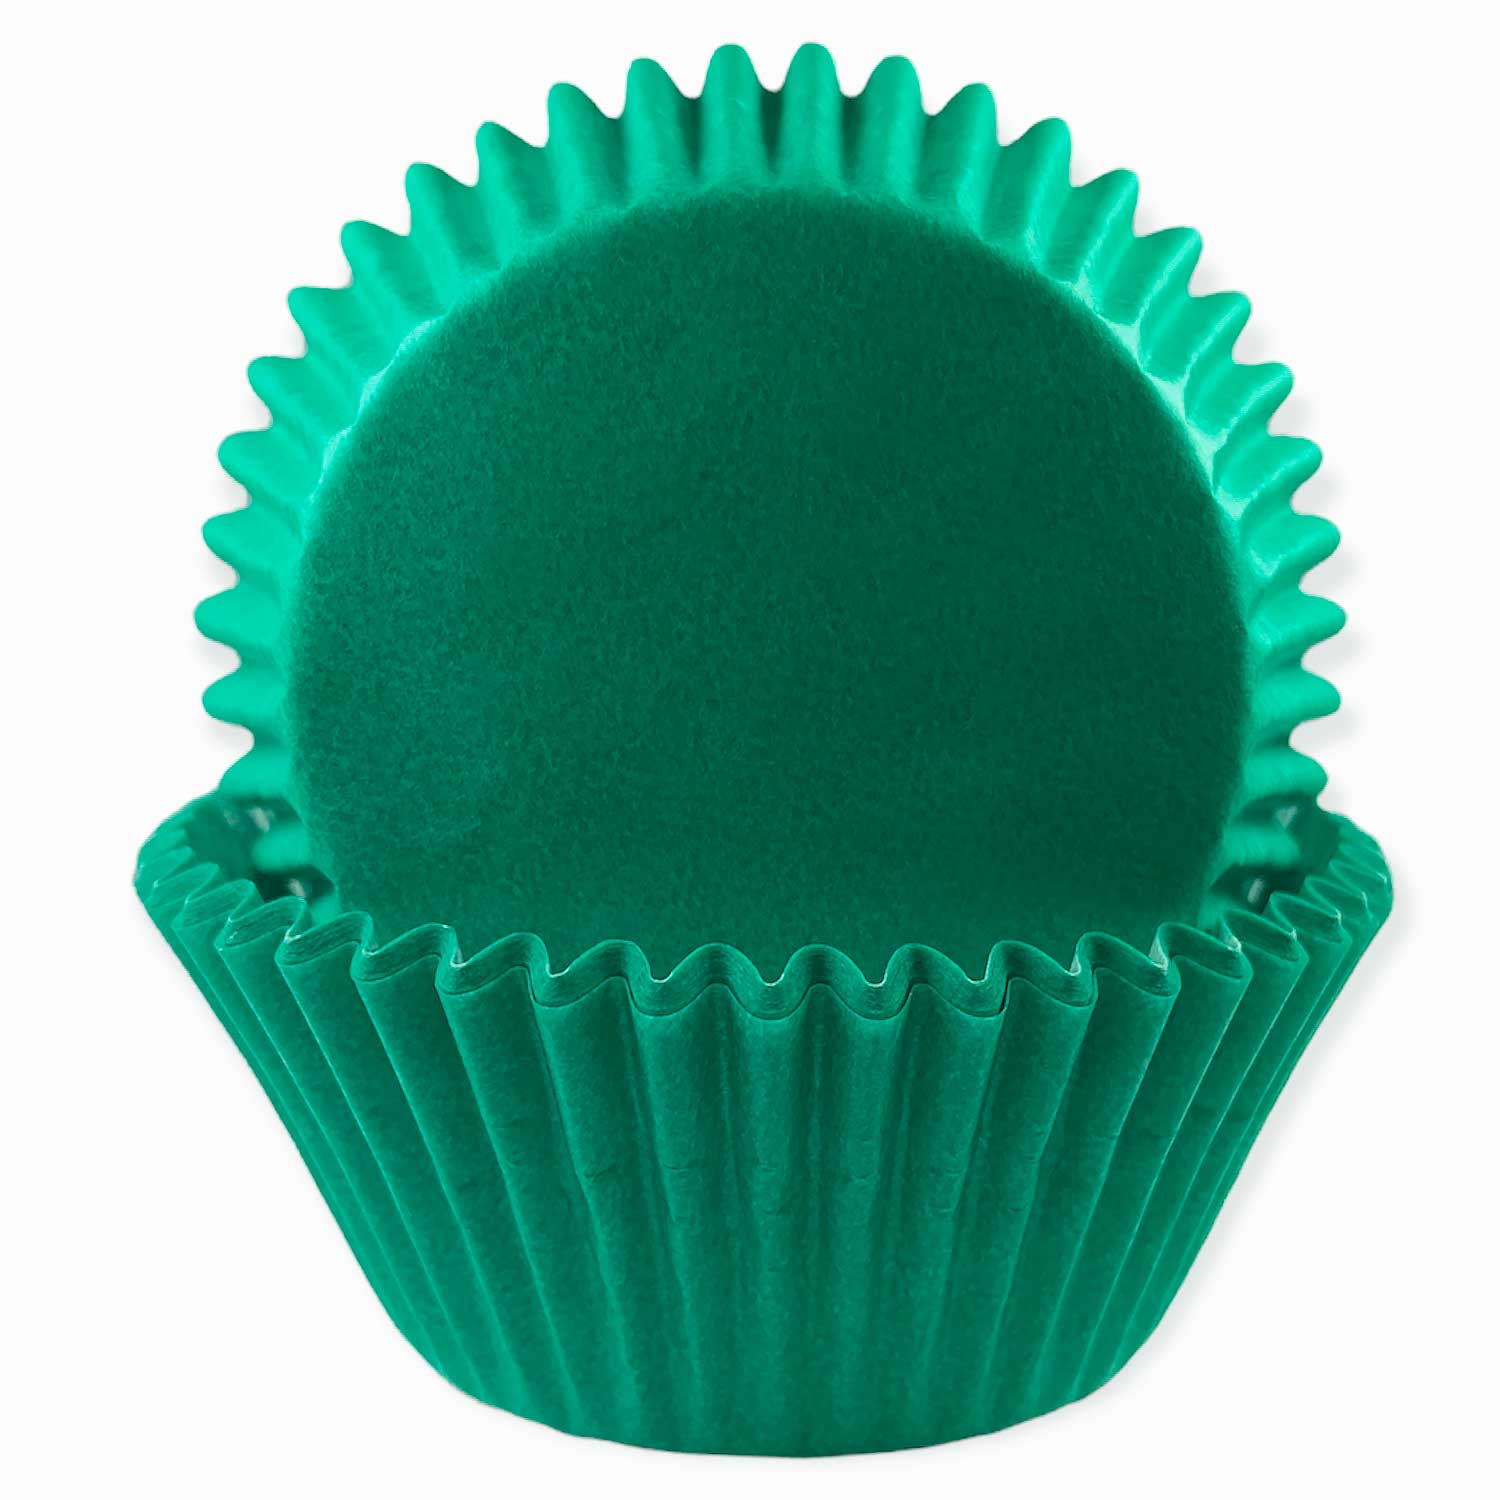 Solid Teal Green Standard Baking Cups